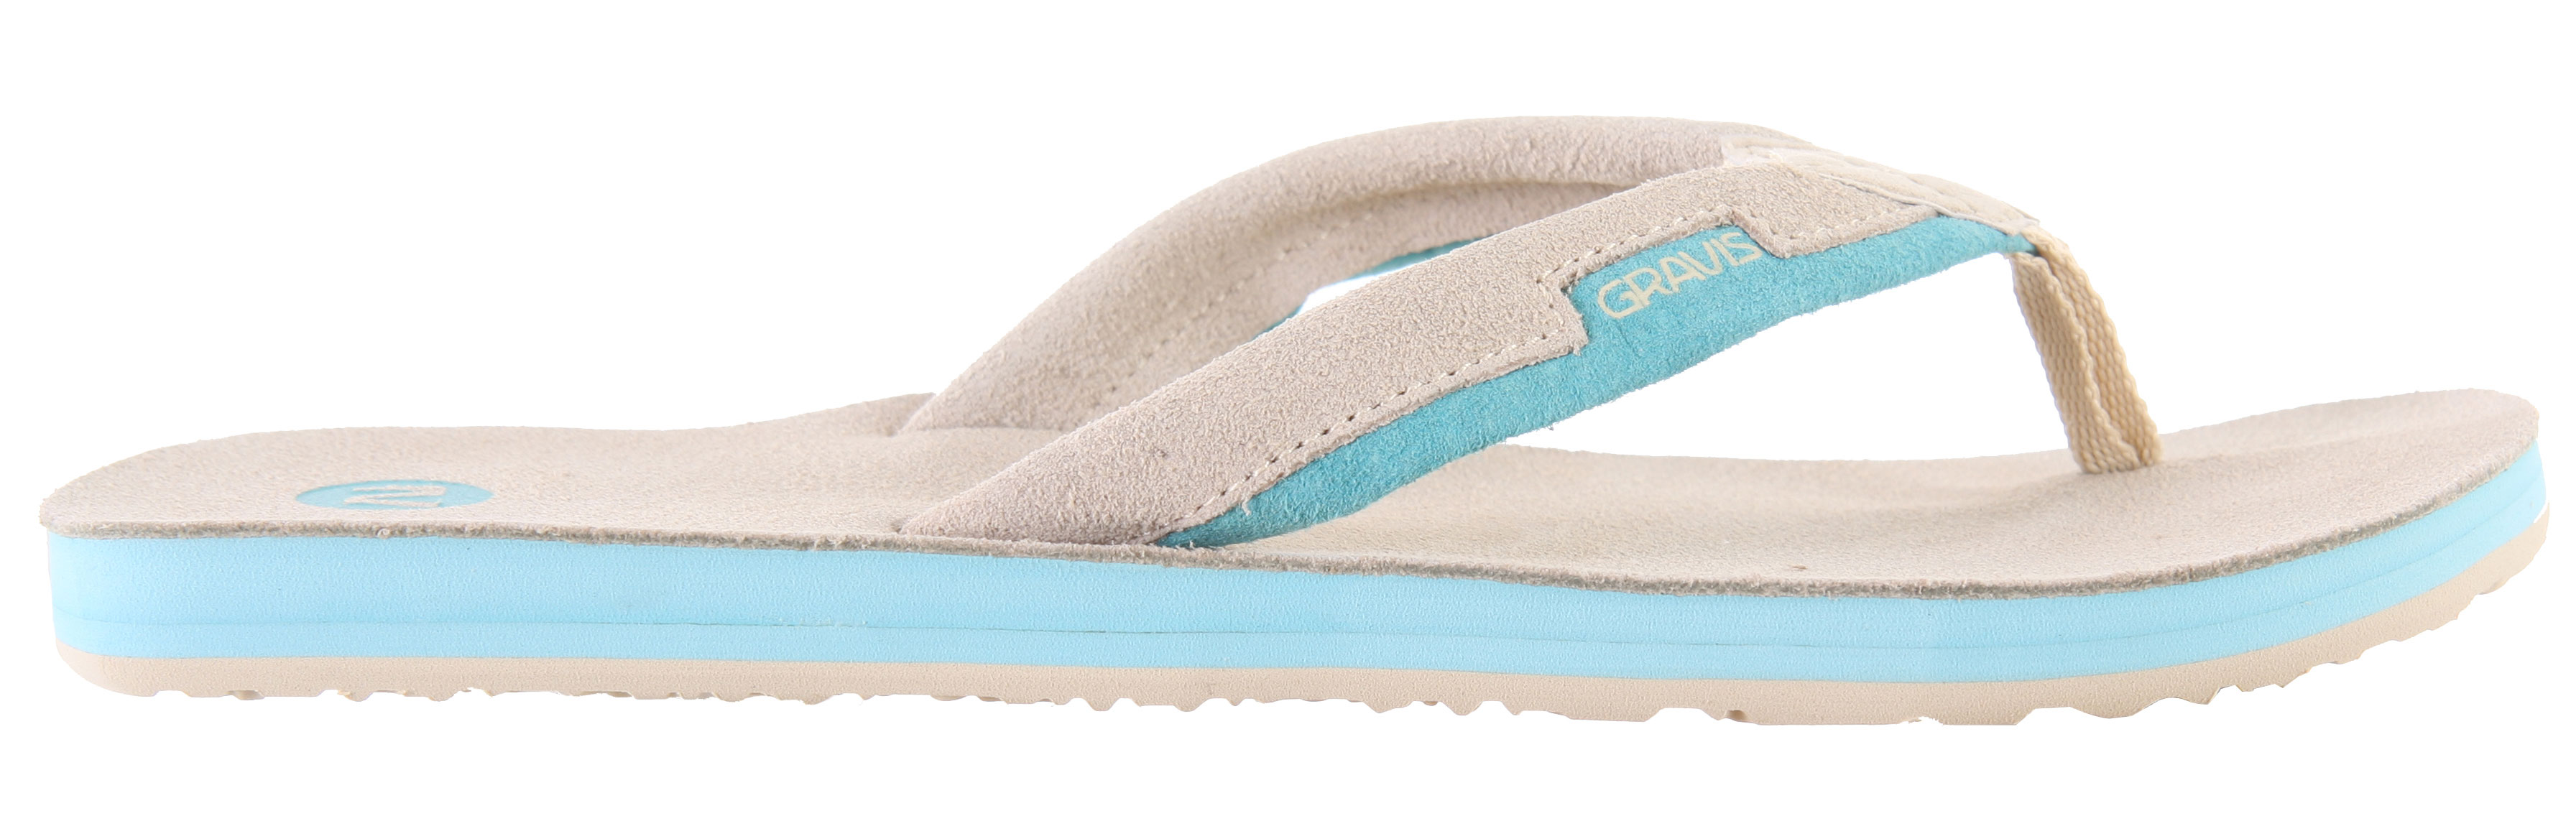 Surf Free your feet and get ready for summer with the Gravis Slider sandals. Premium leather is uses on the top deck, straps, and lining for extra comfort. The molded footbed with arch support lets you rock the Sliders all day, and the rugged synthetic outsole means they'll hold up to terrain from the beach to the pool. It's time to get out of those sneakers and boots and show your feet the light with the Gravis Slider sandals.Key Features of the Gravis Slider Sandals: Premium leather topdeck, straps, and lining Molded footbed Gravis logo on footbed and straps. Arch support Durable synthetic outsole - $10.96